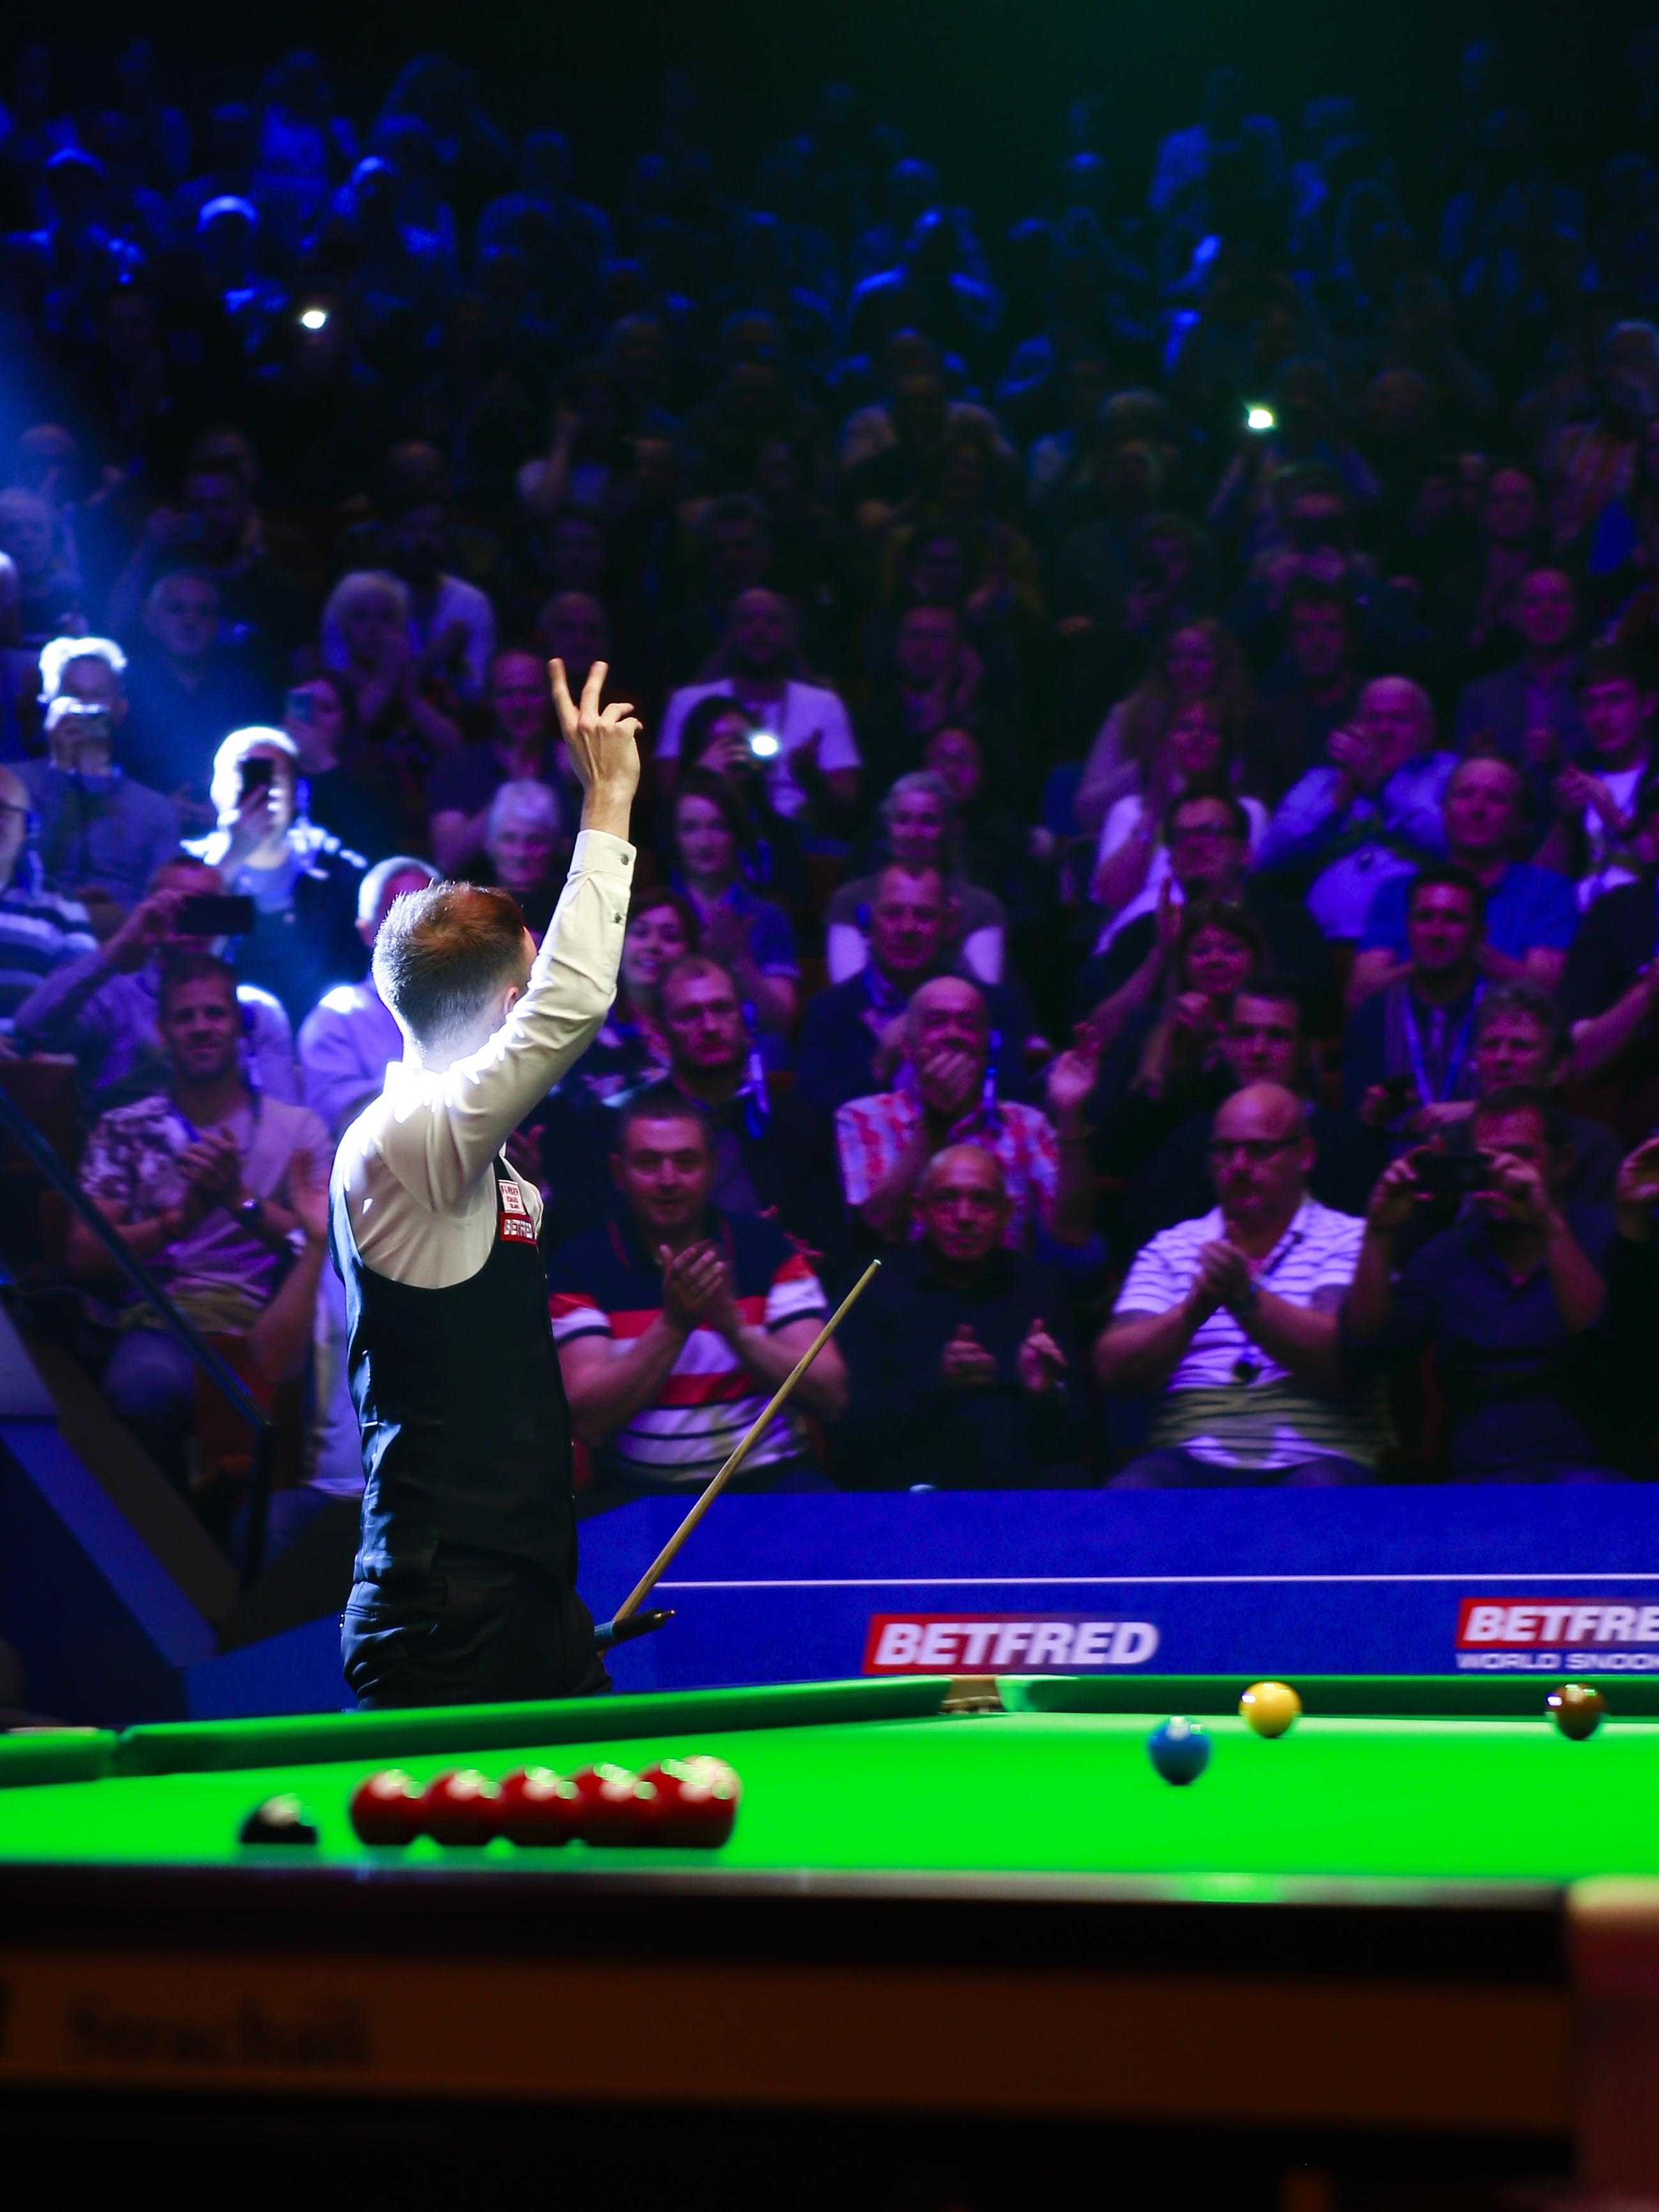 Review of the Season - World Snooker